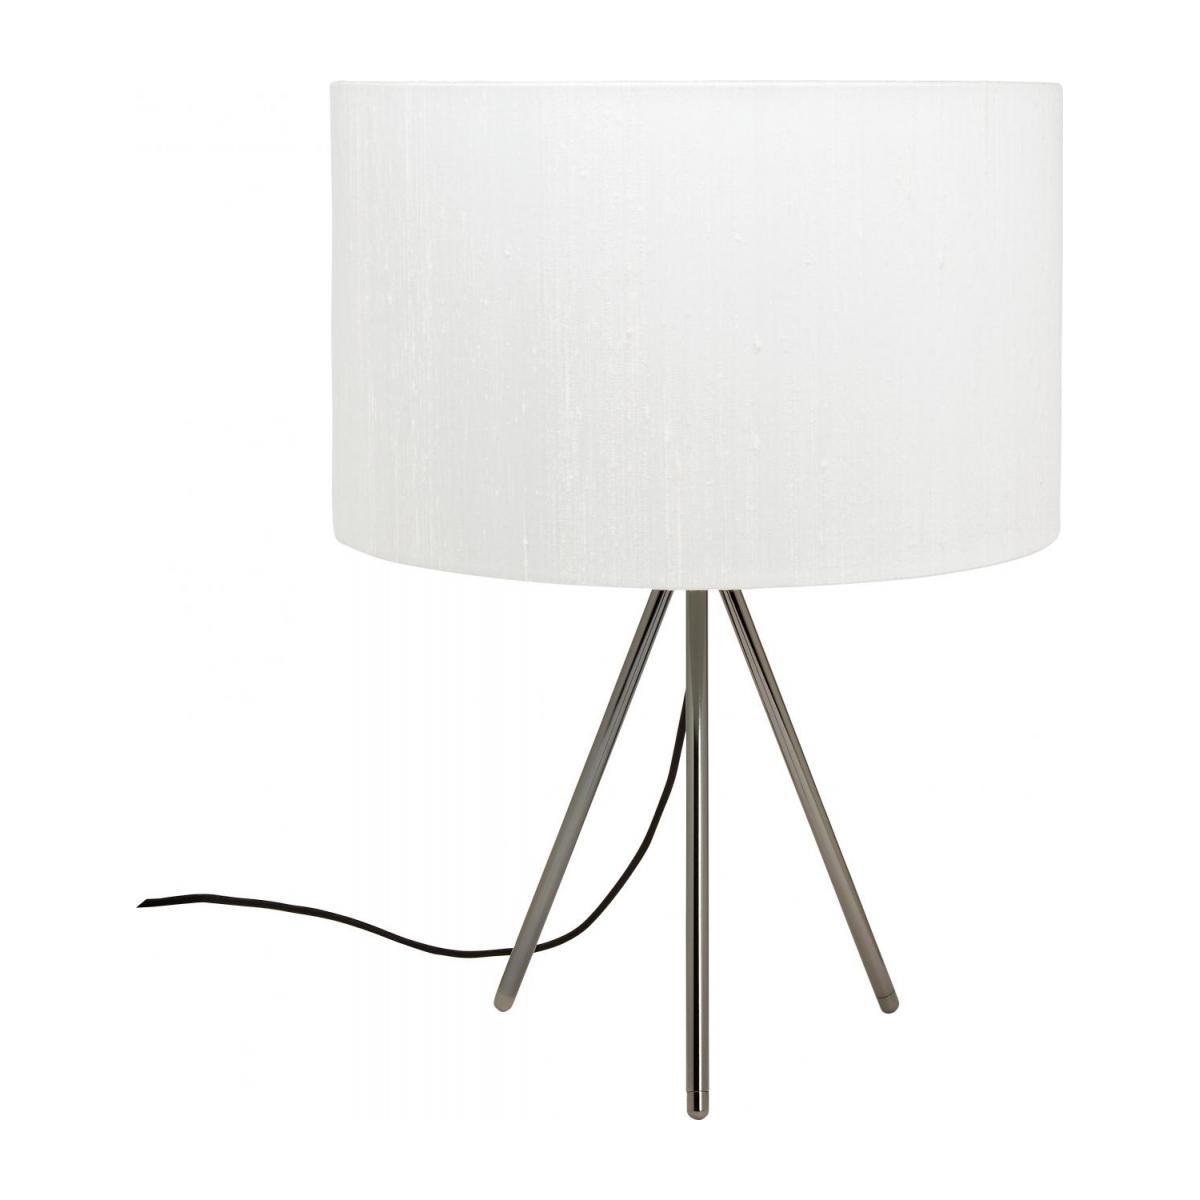 Trepied Metal Table Lamp Base Tripod Black Habitat